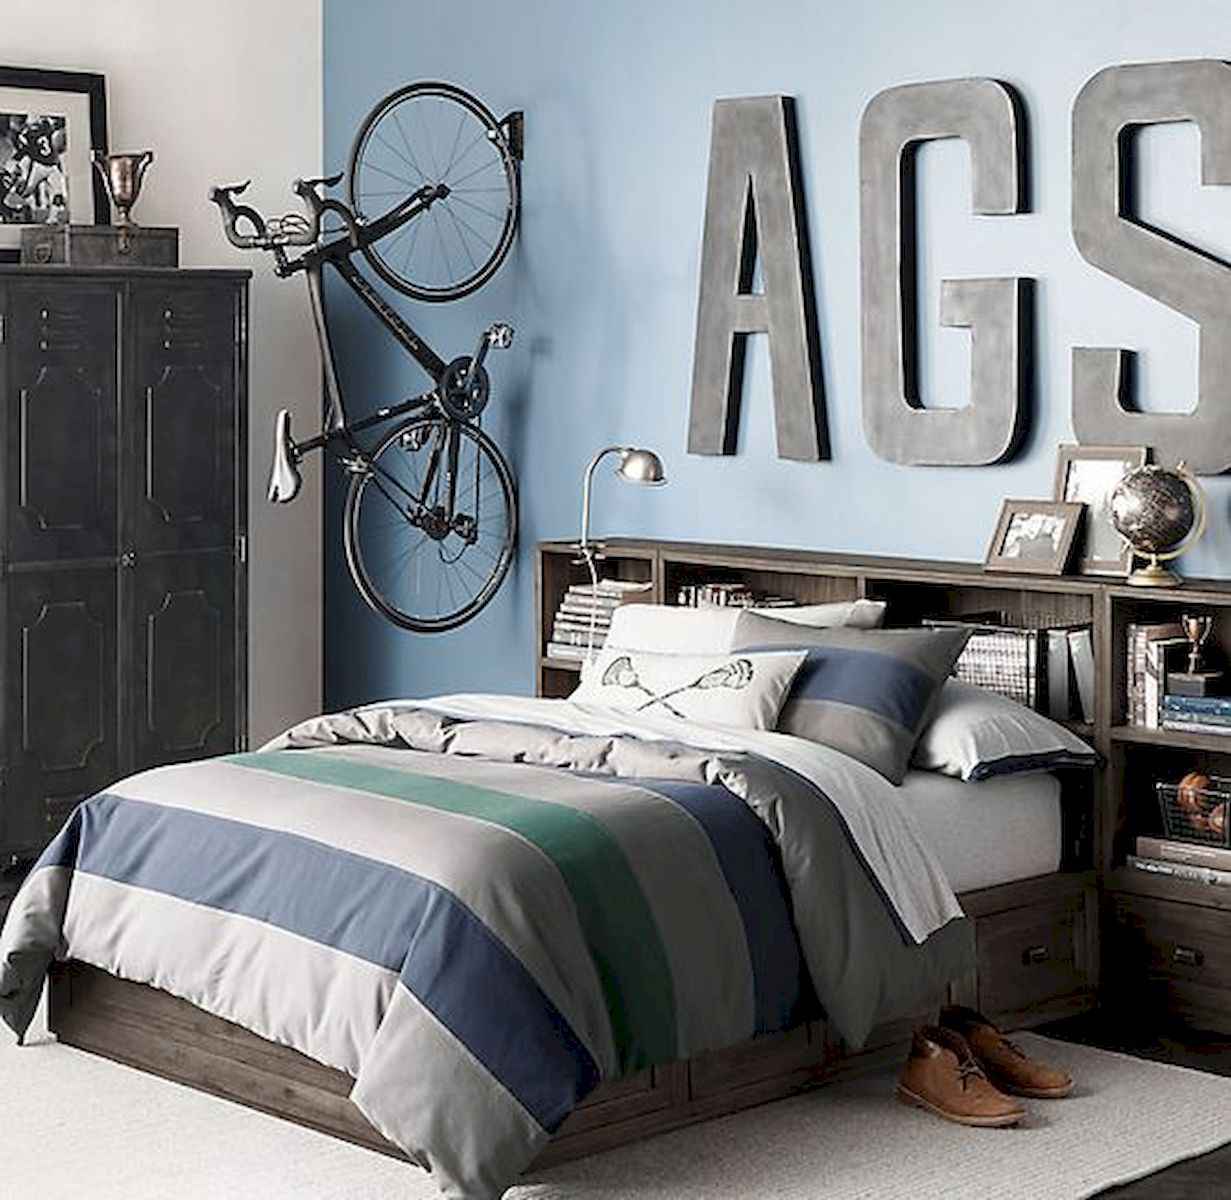 45 cool boys bedroom ideas to try at home 35  house8055